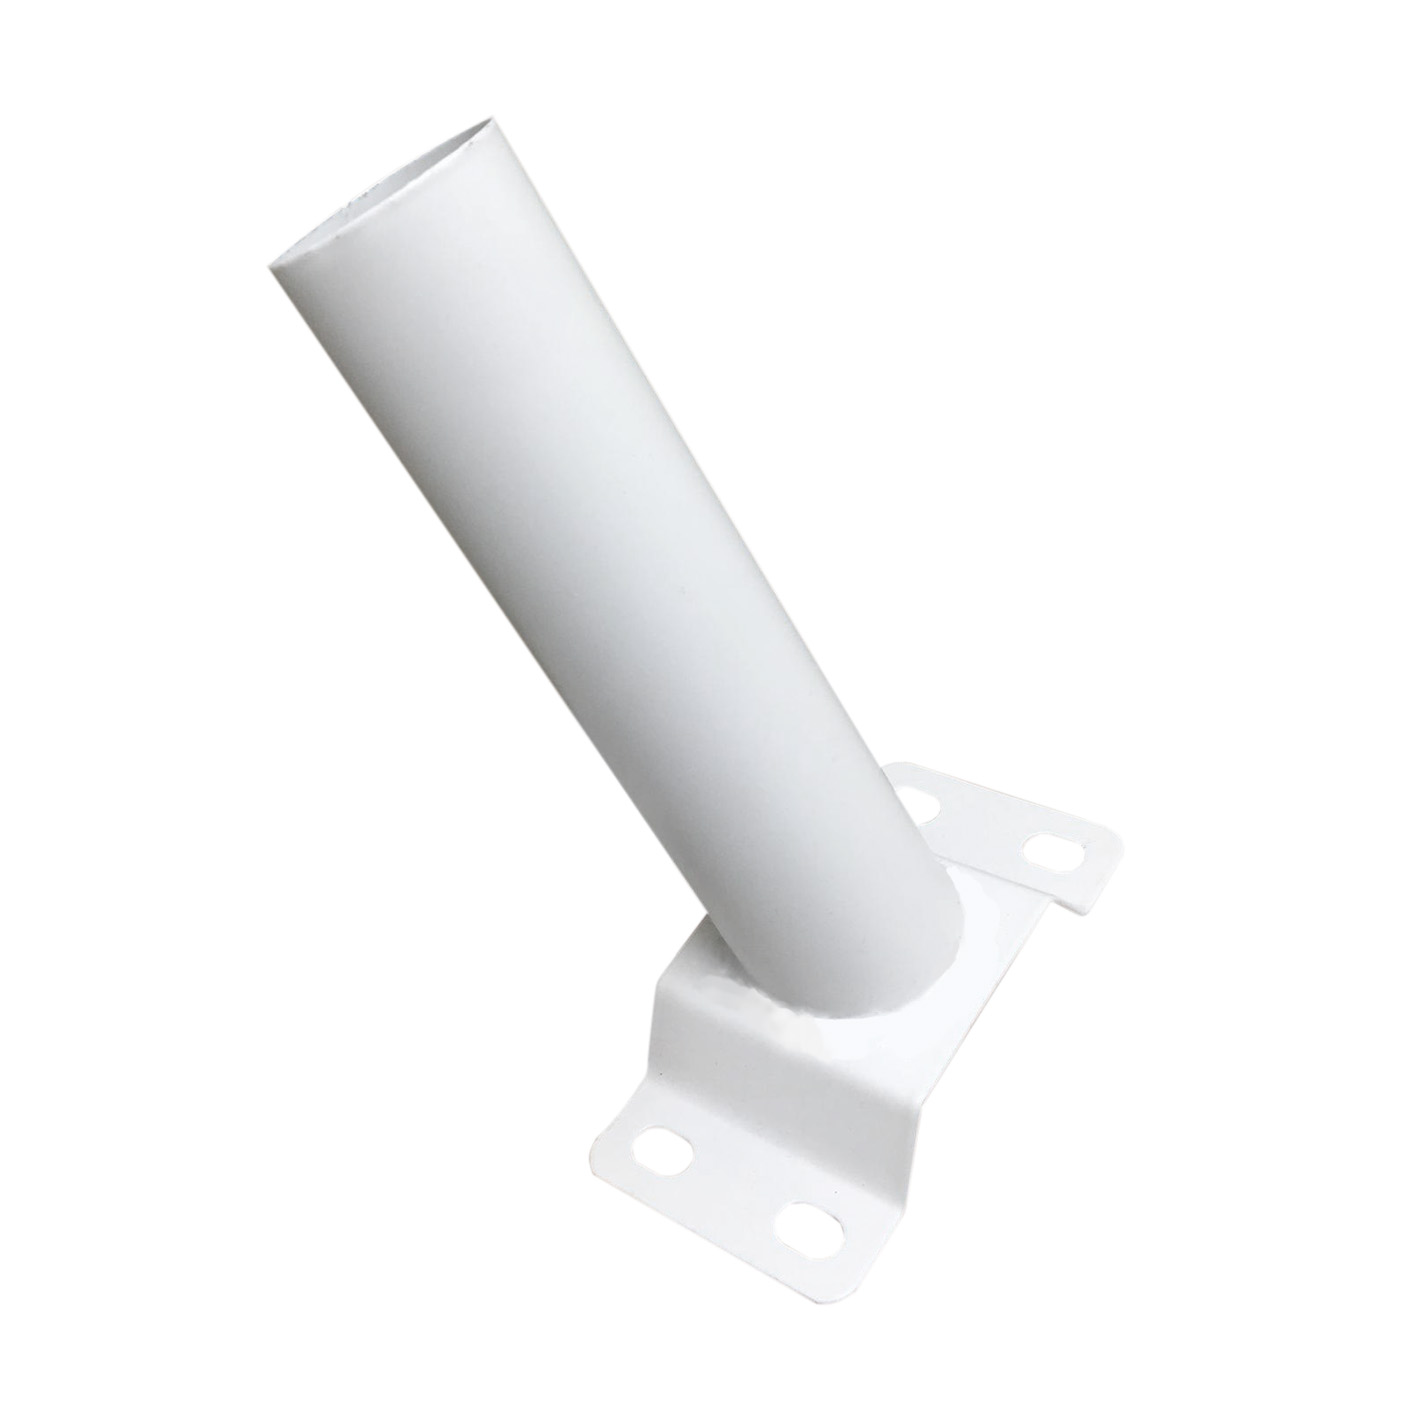 Stake support for the lighthouse and street light wall mounting A20